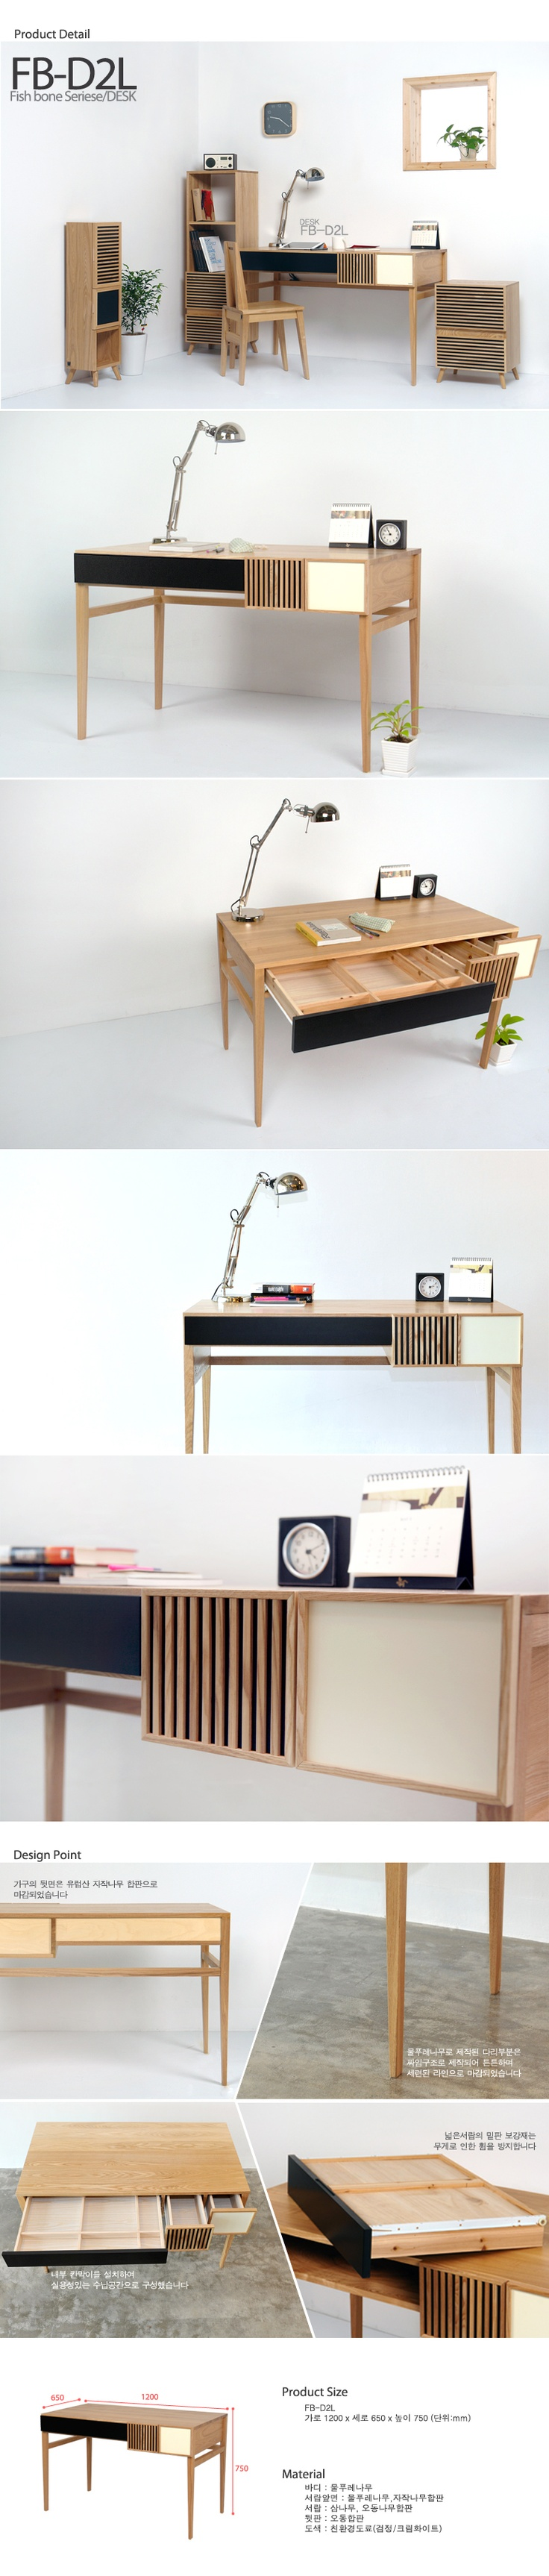 i want this desk so bad